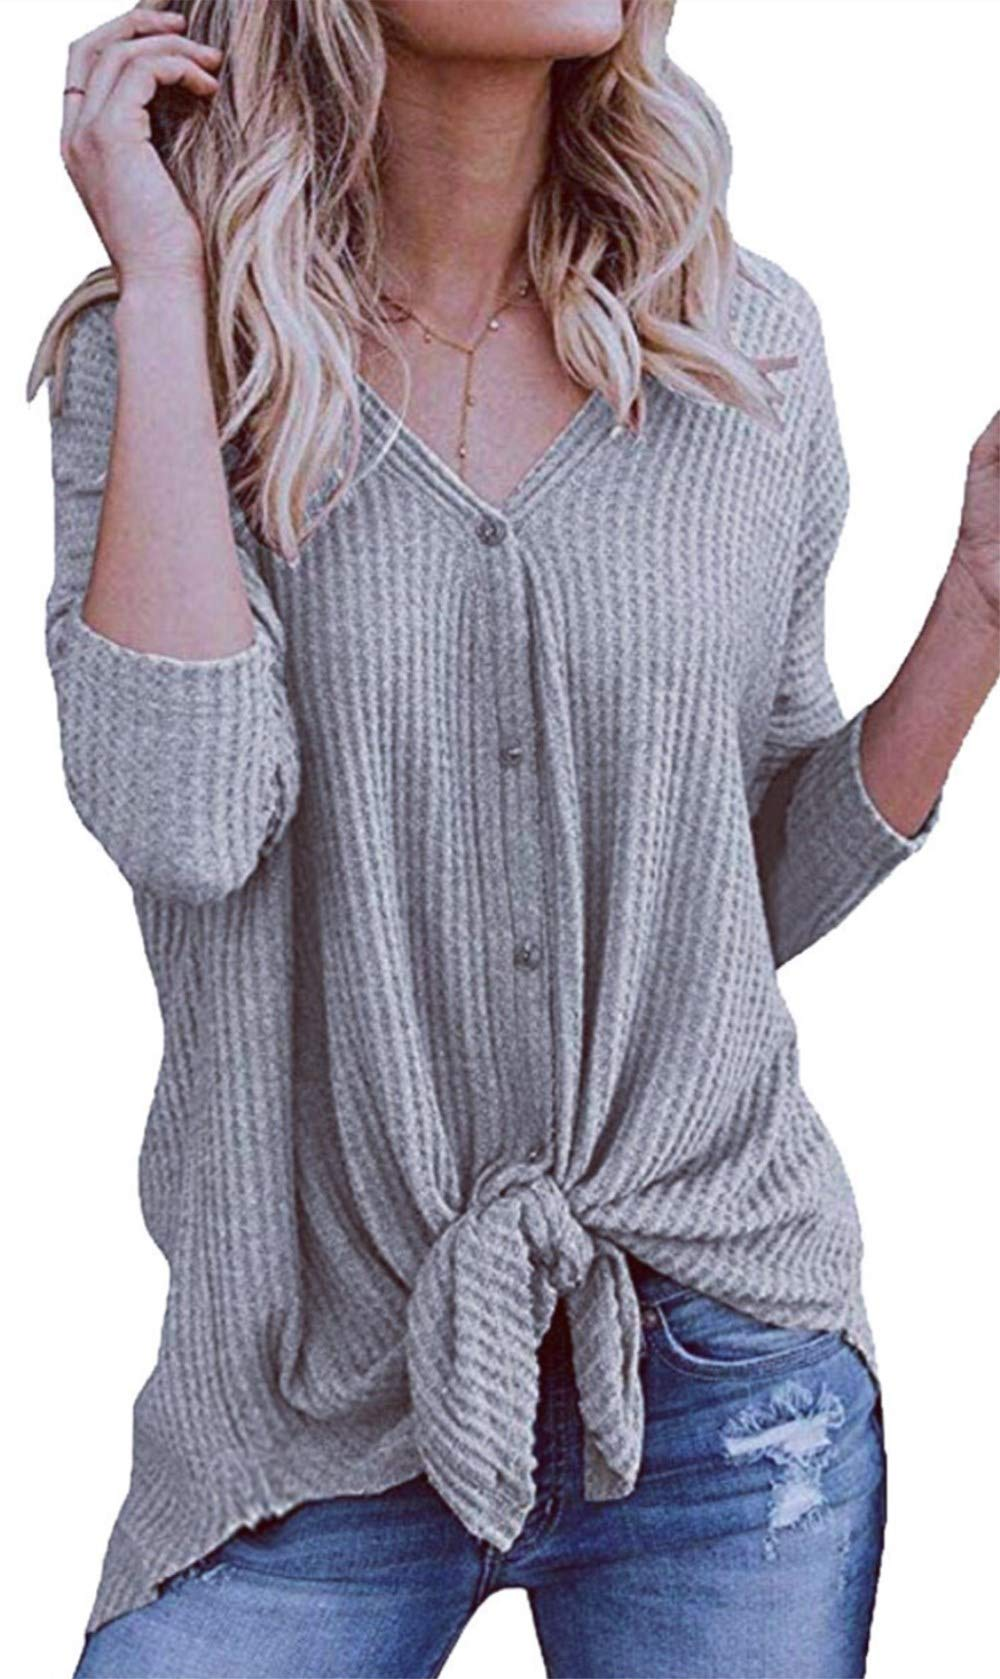 elescat Womens Sweaters Knited Cardigan Long Sleeve Tops Knot Henley Shirts V Neck Blouses (L,Grey)